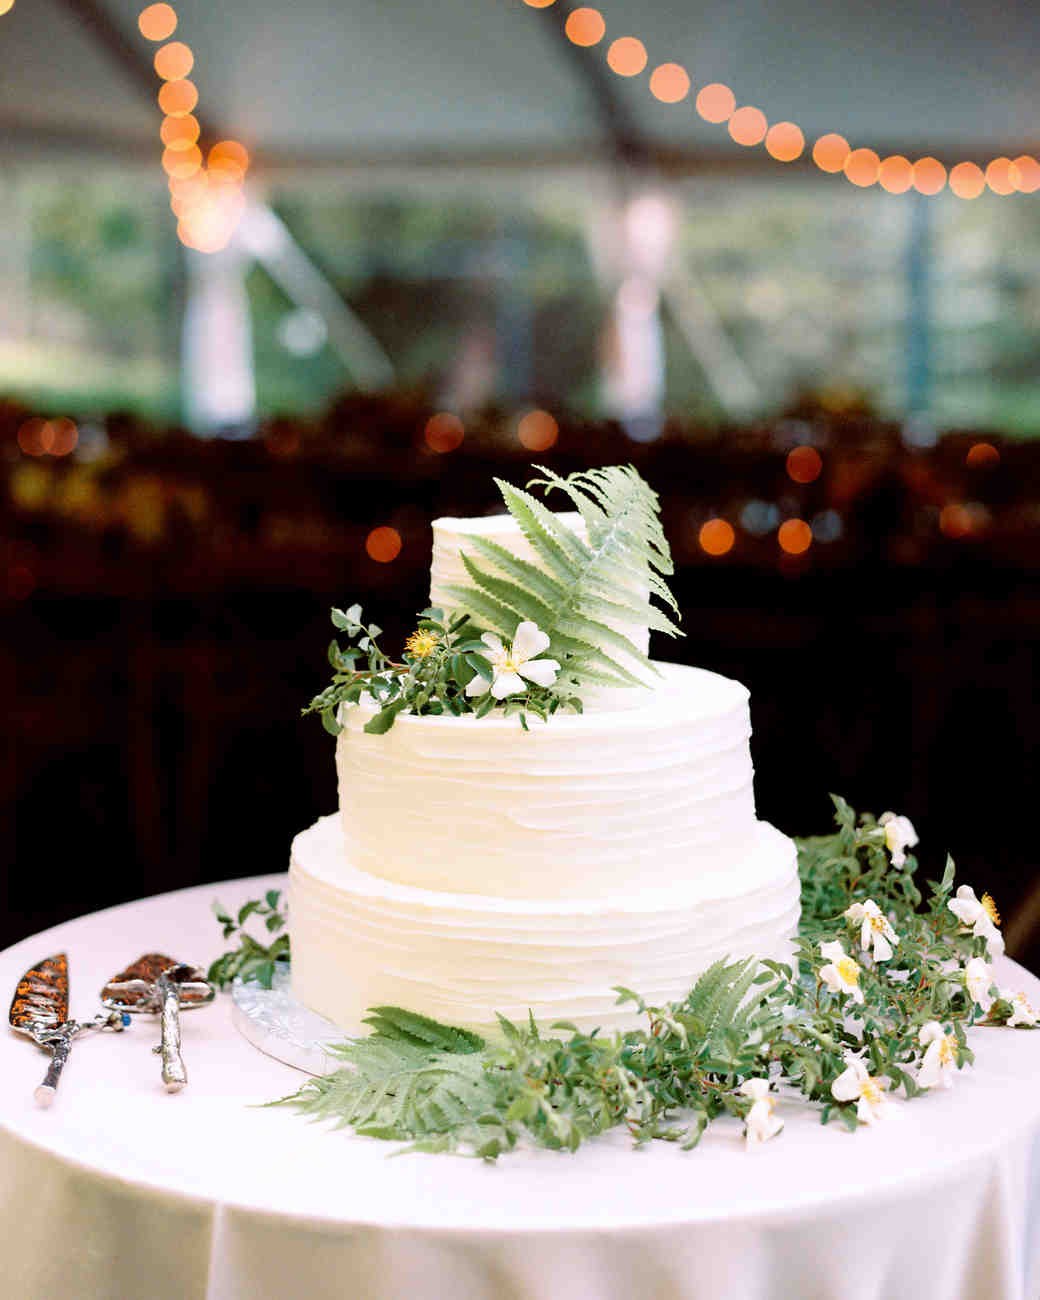 Wedding Cakes: Spring Wedding Cakes That Are (Almost) Too Pretty To Eat